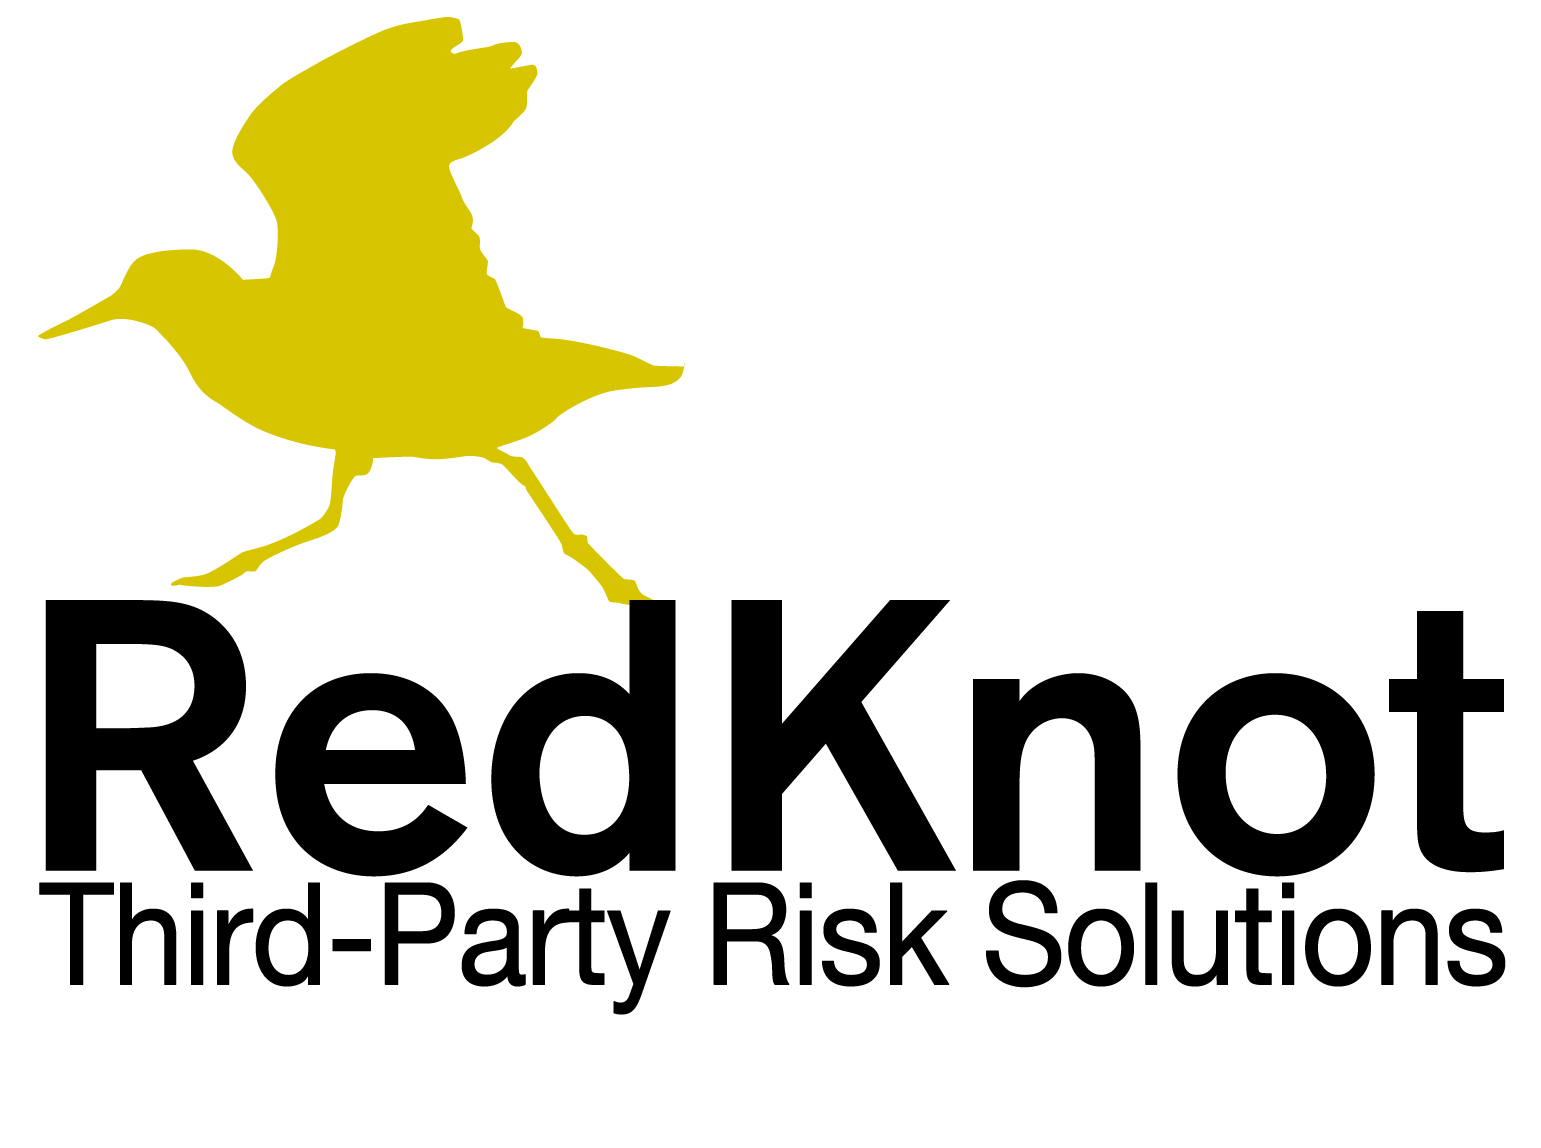 RedKnot Third-Party Risk Solutions